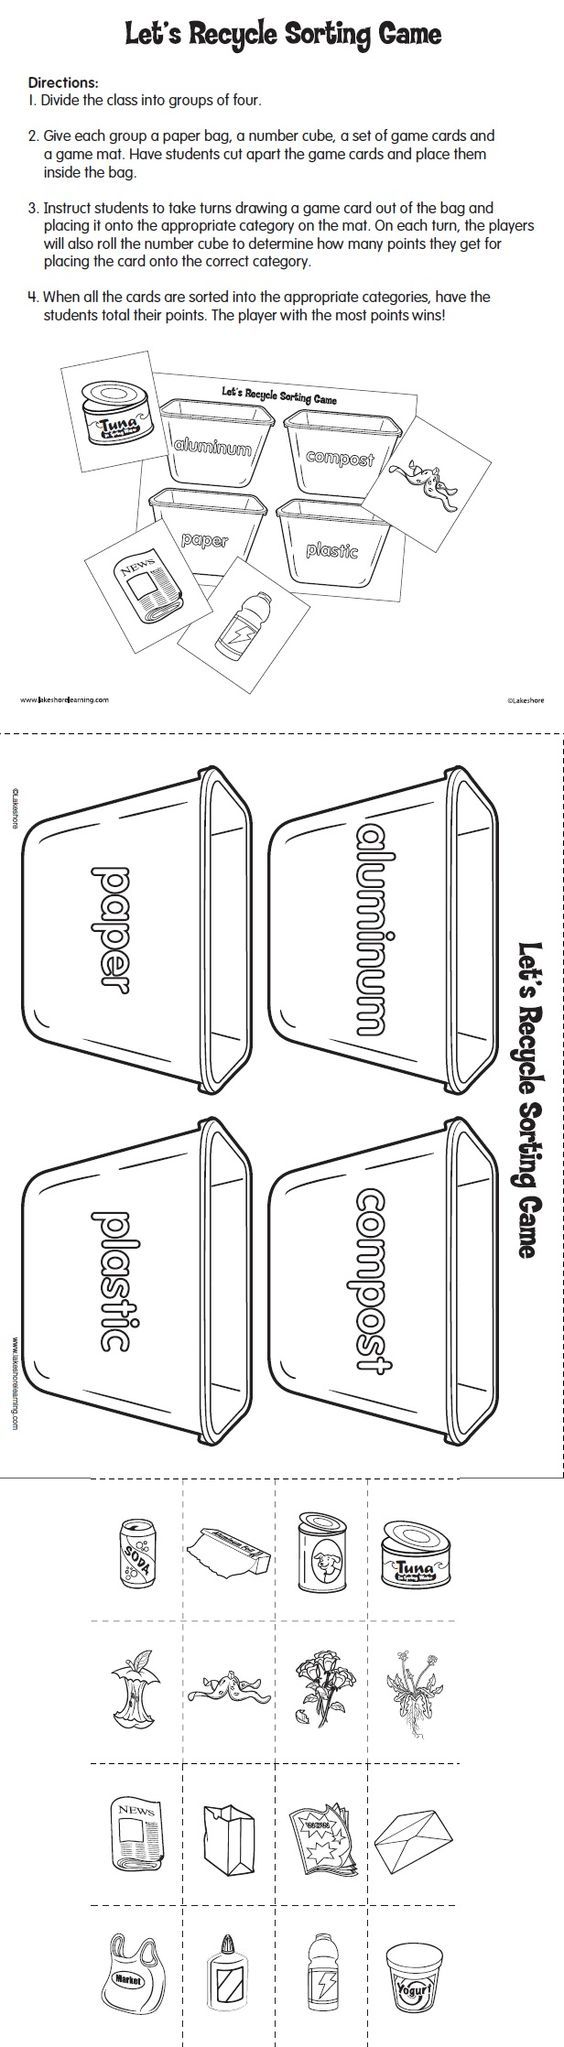 Let's Recycle Sorting Game Printable from Lakeshore Learning: